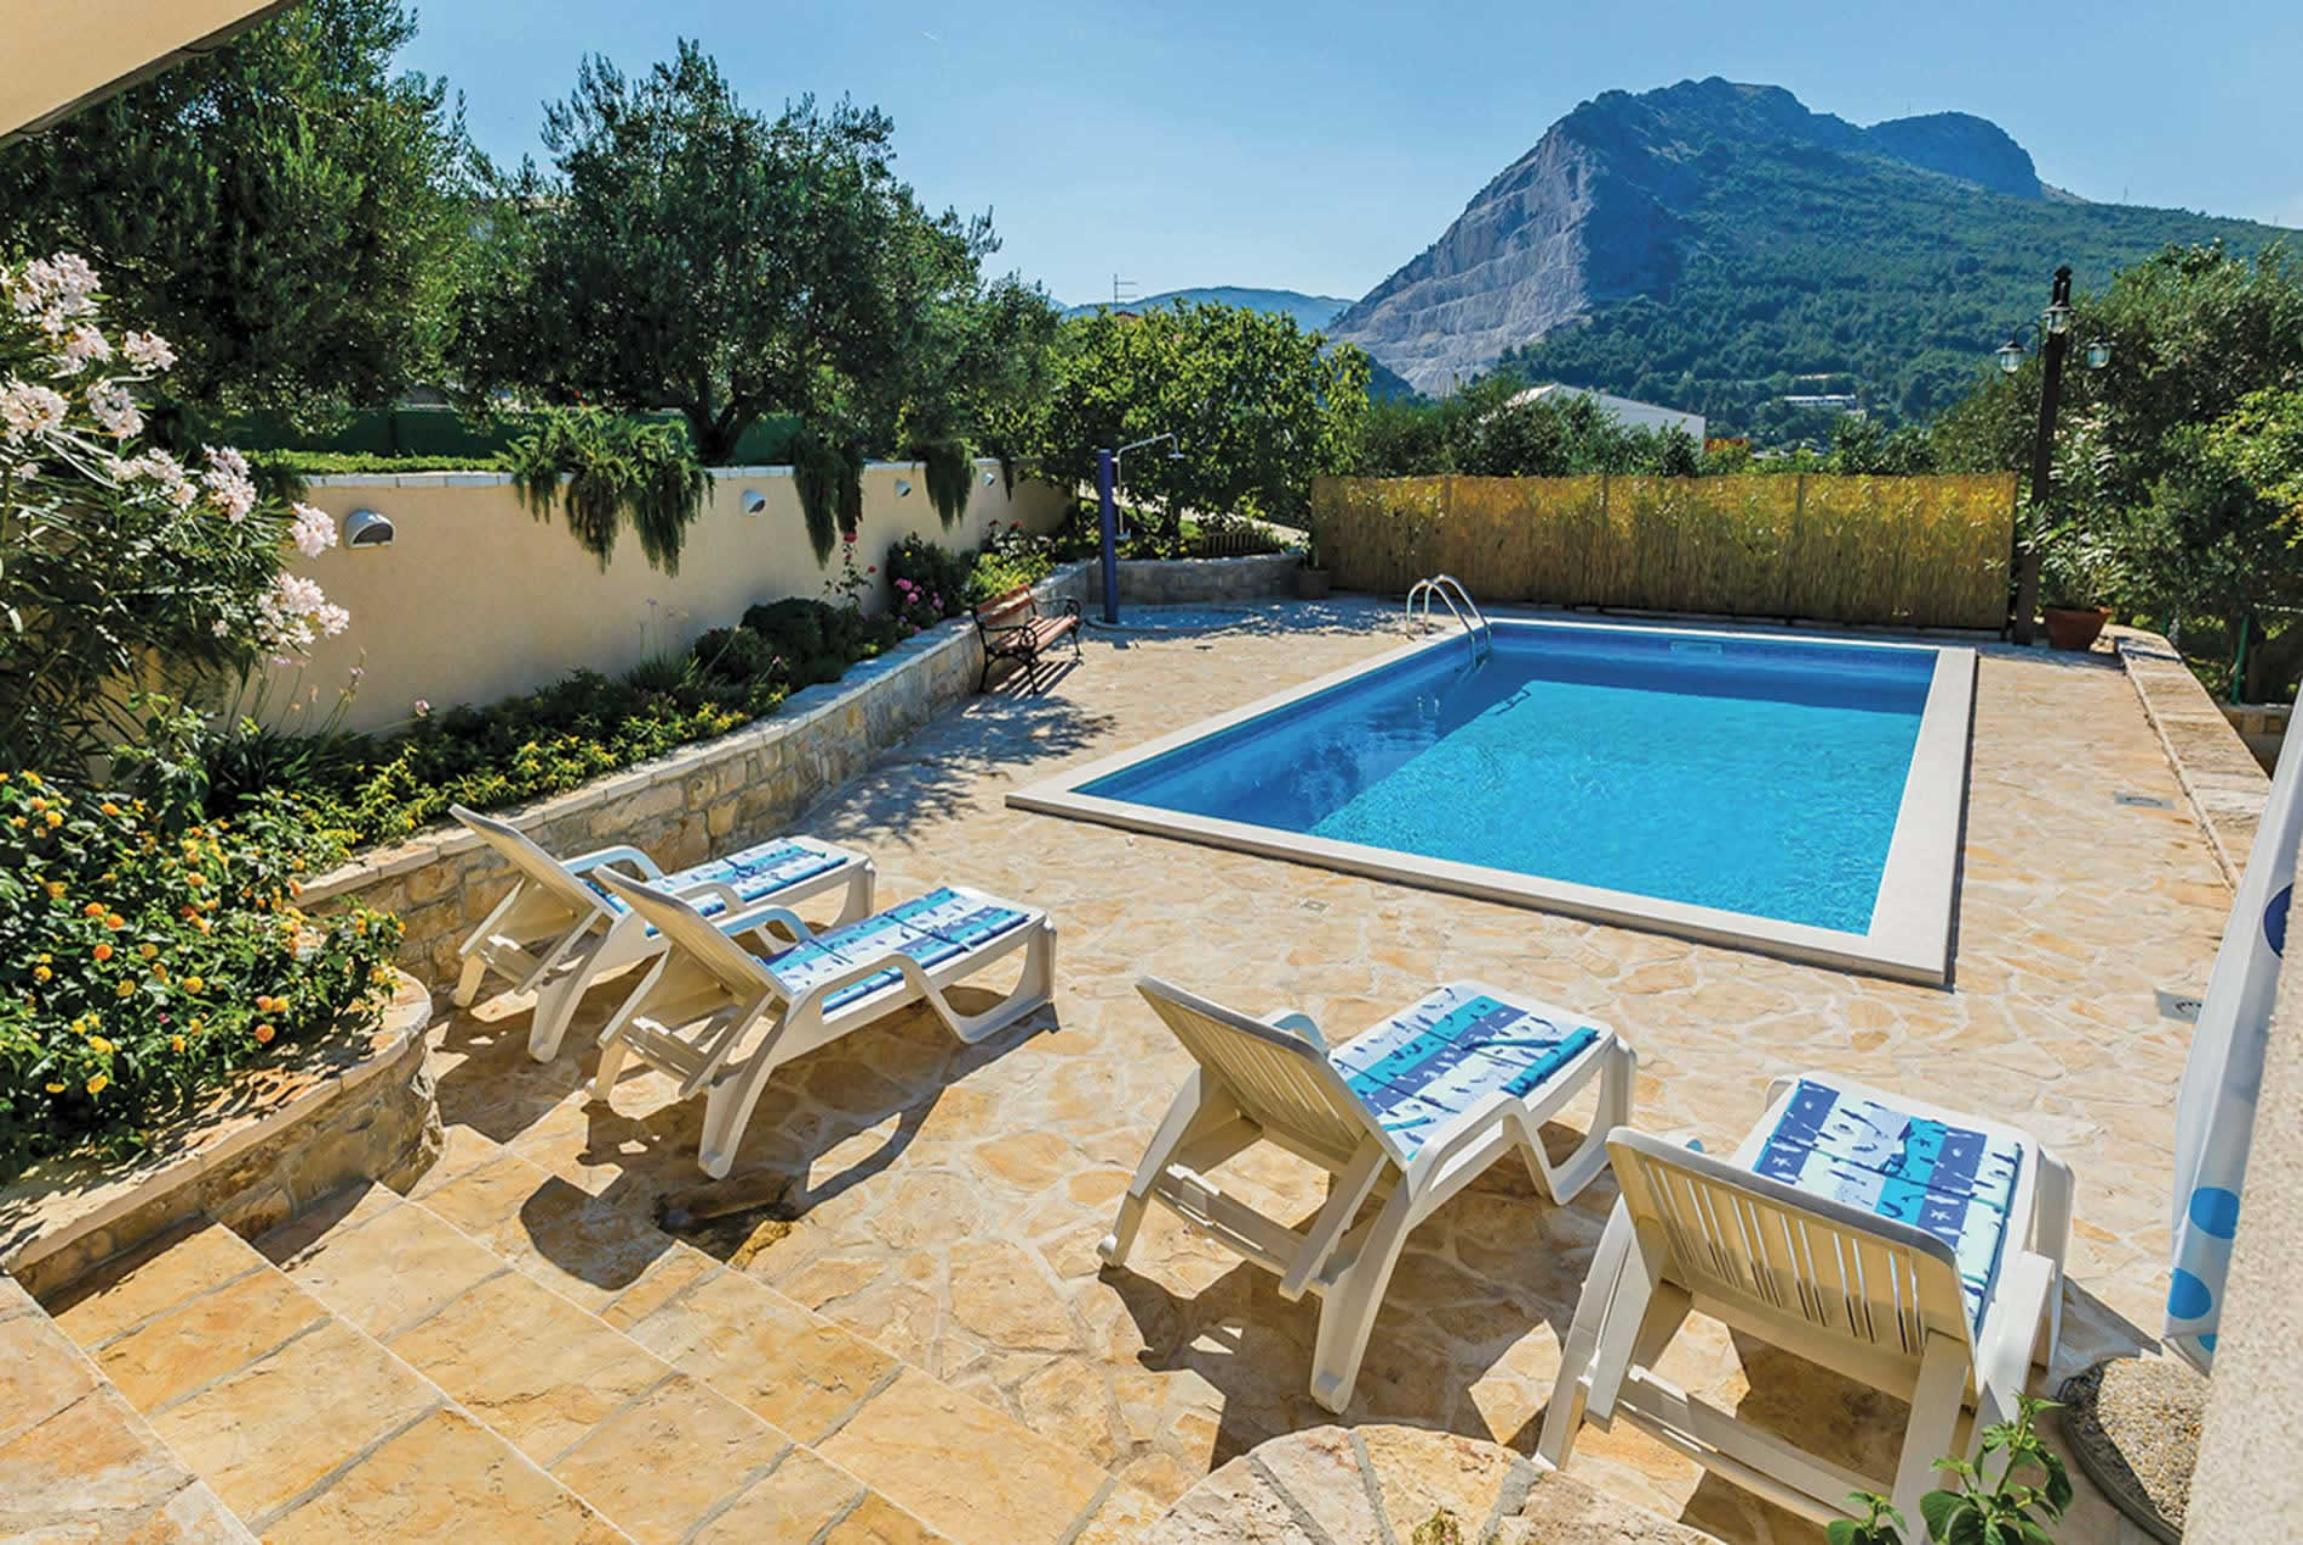 Read more about Priroda villa